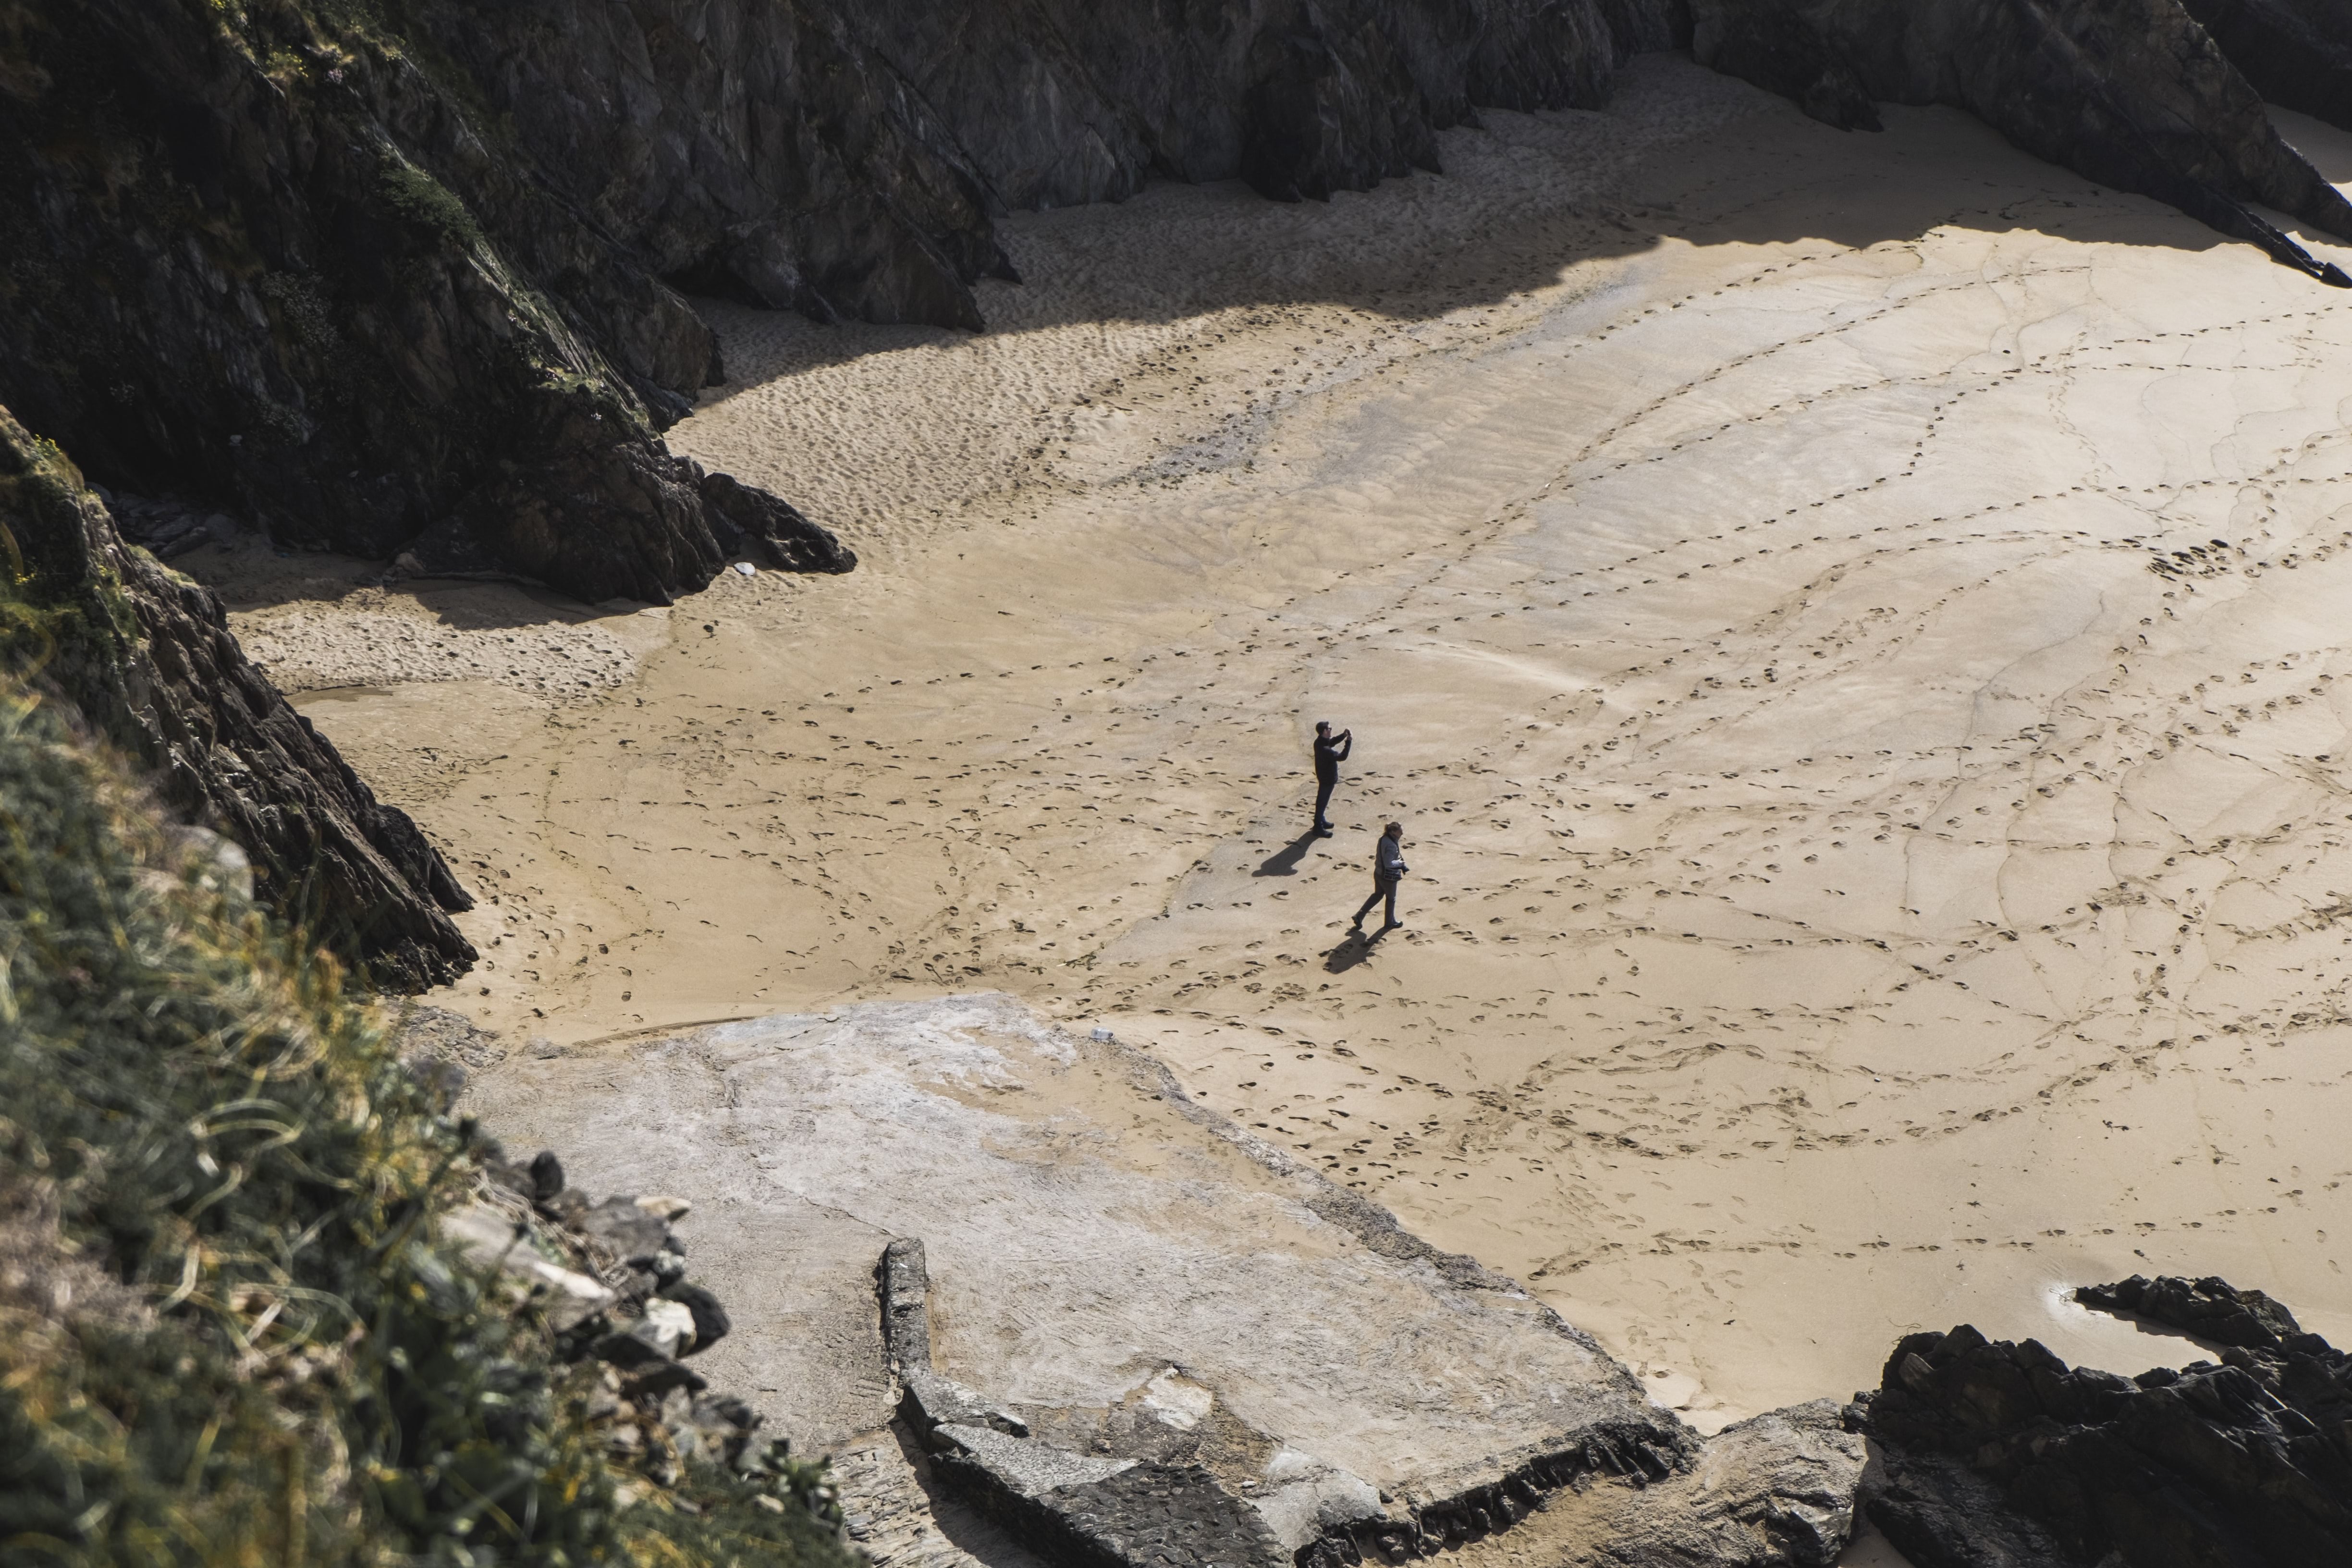 Two people on a sand beach full of footprints between rock cliffs